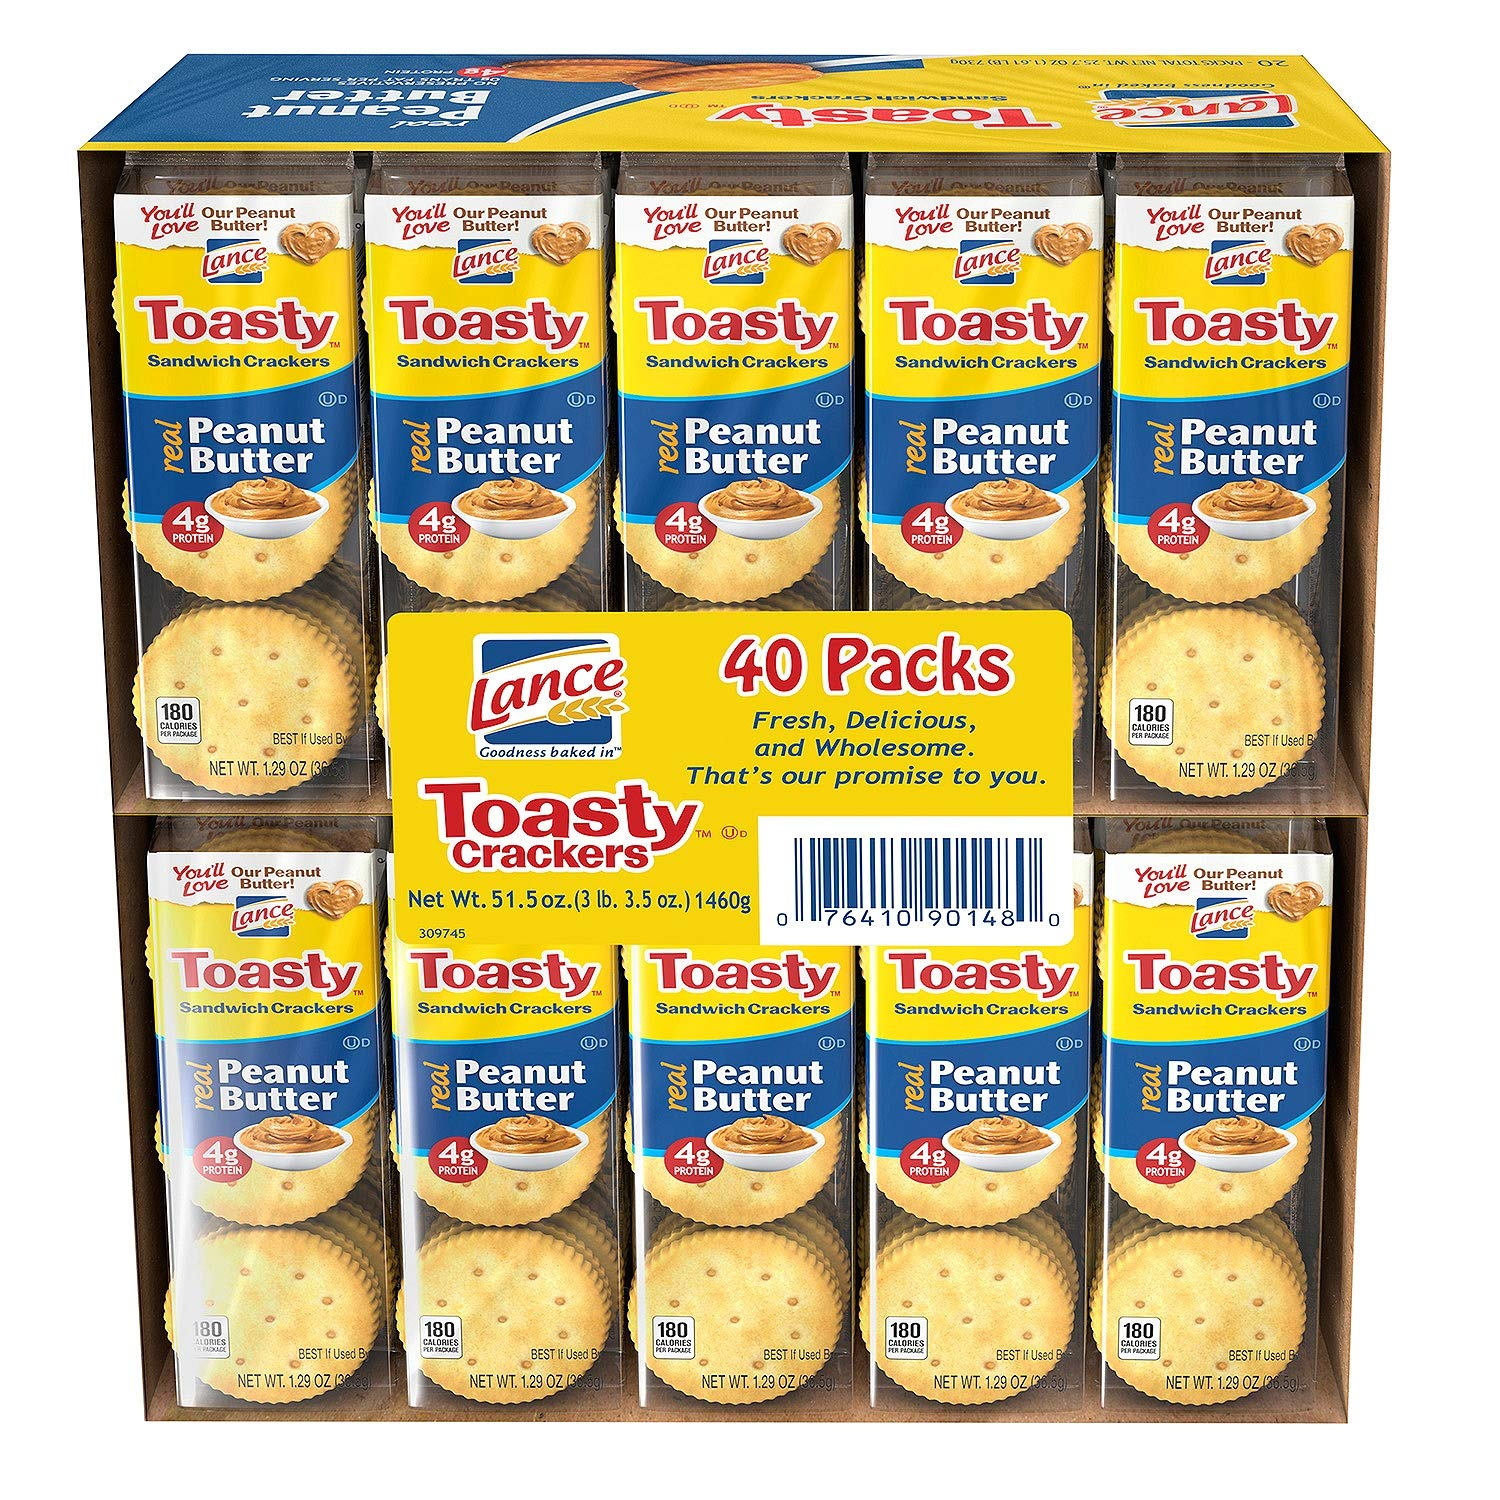 Lance Sandwich Crackers, Toasty Peanut Butter 40 pk. (pack of 3) A1